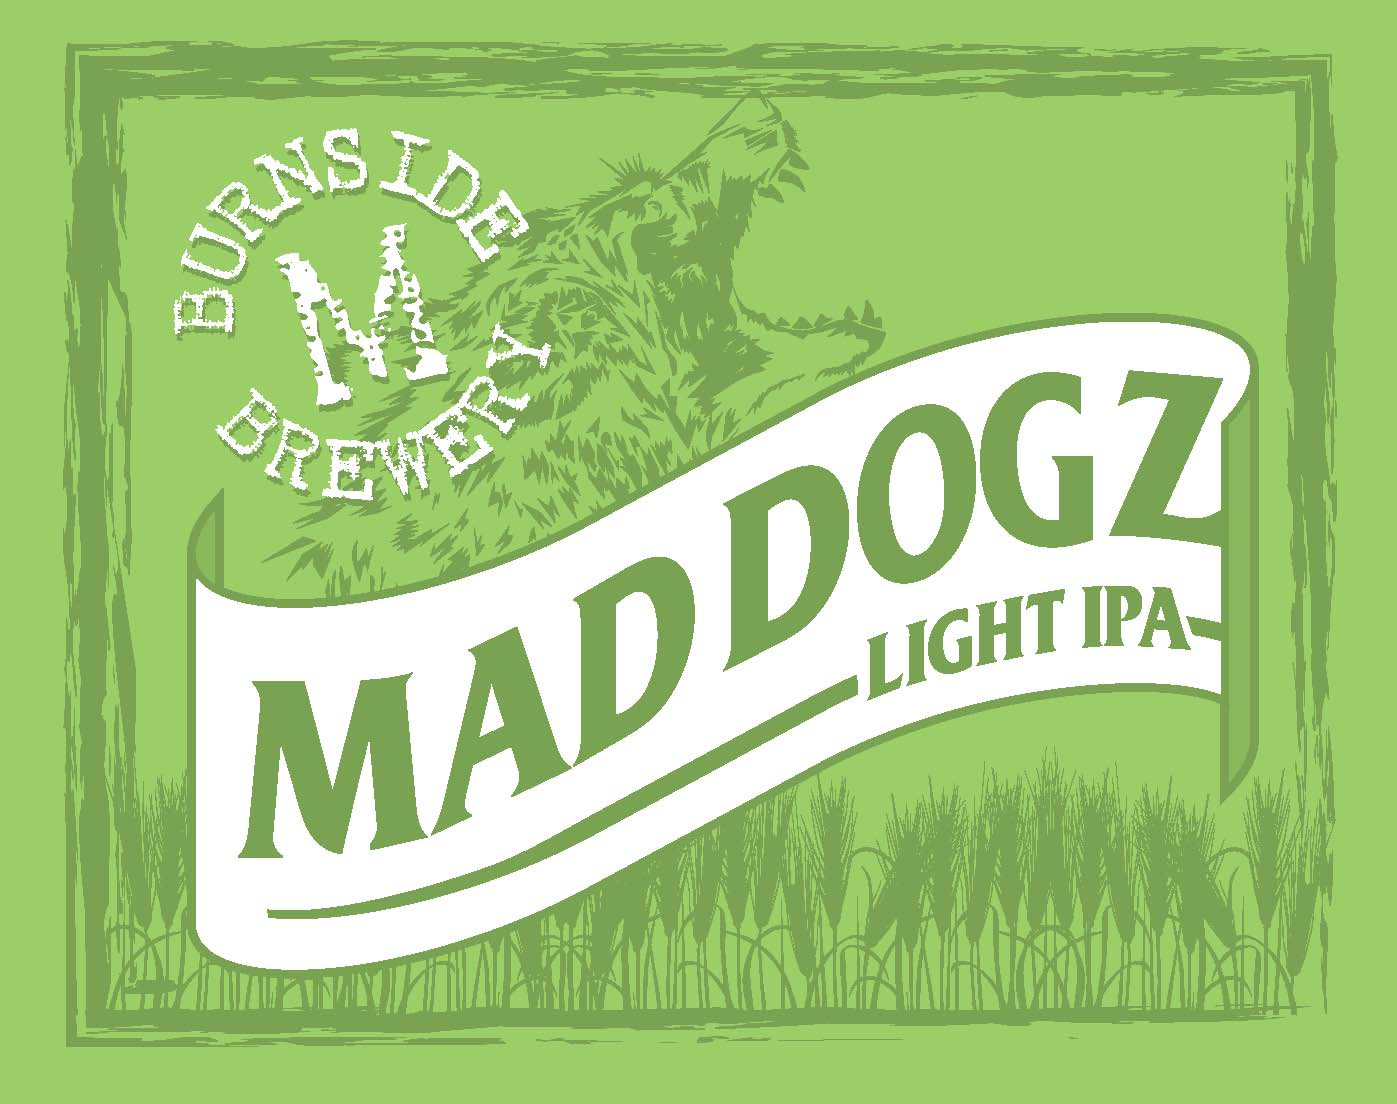 3. Mad Dogz Light IPA